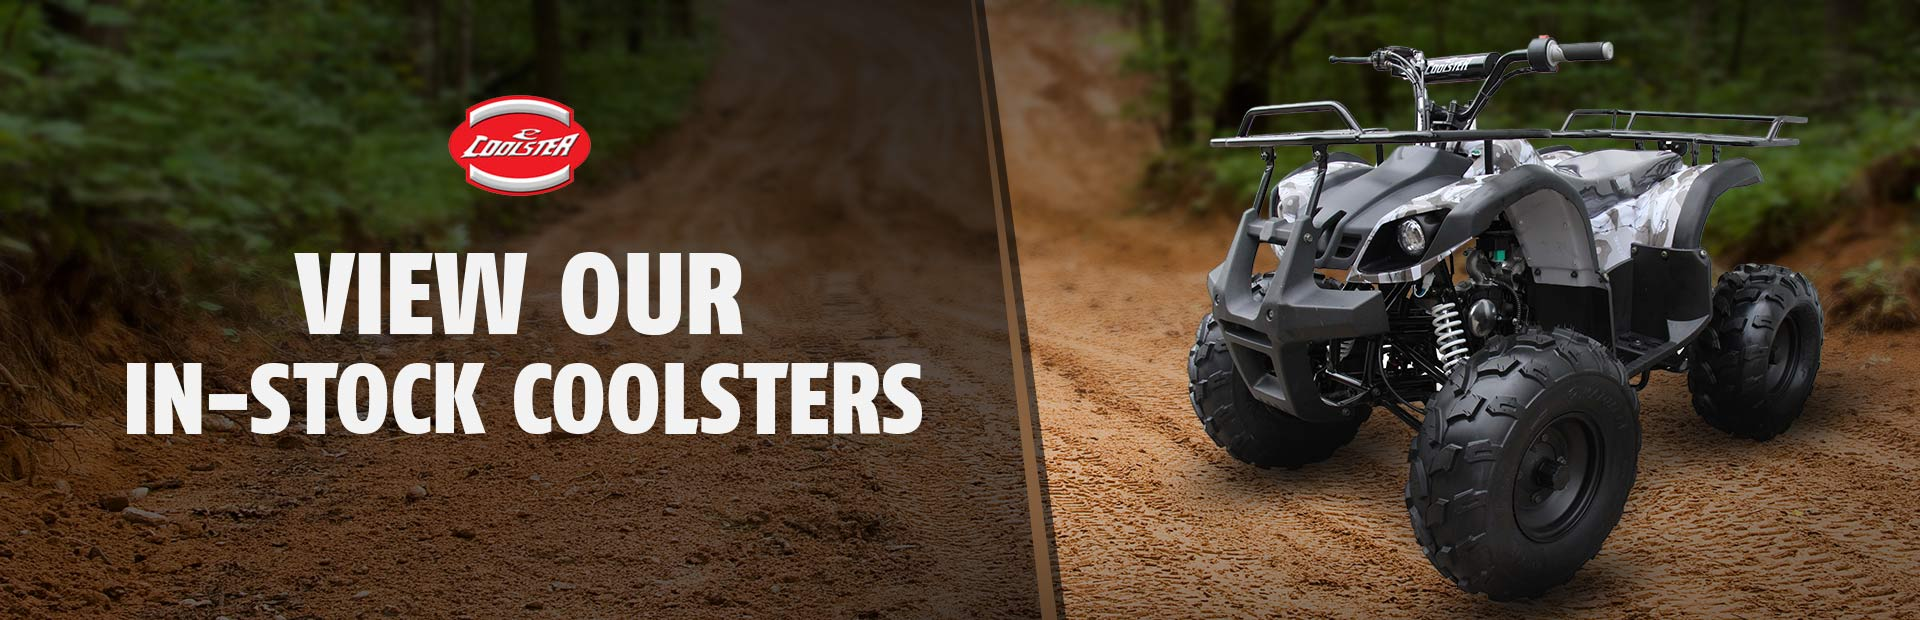 Click here to view our in-stock Coolster ATVs.